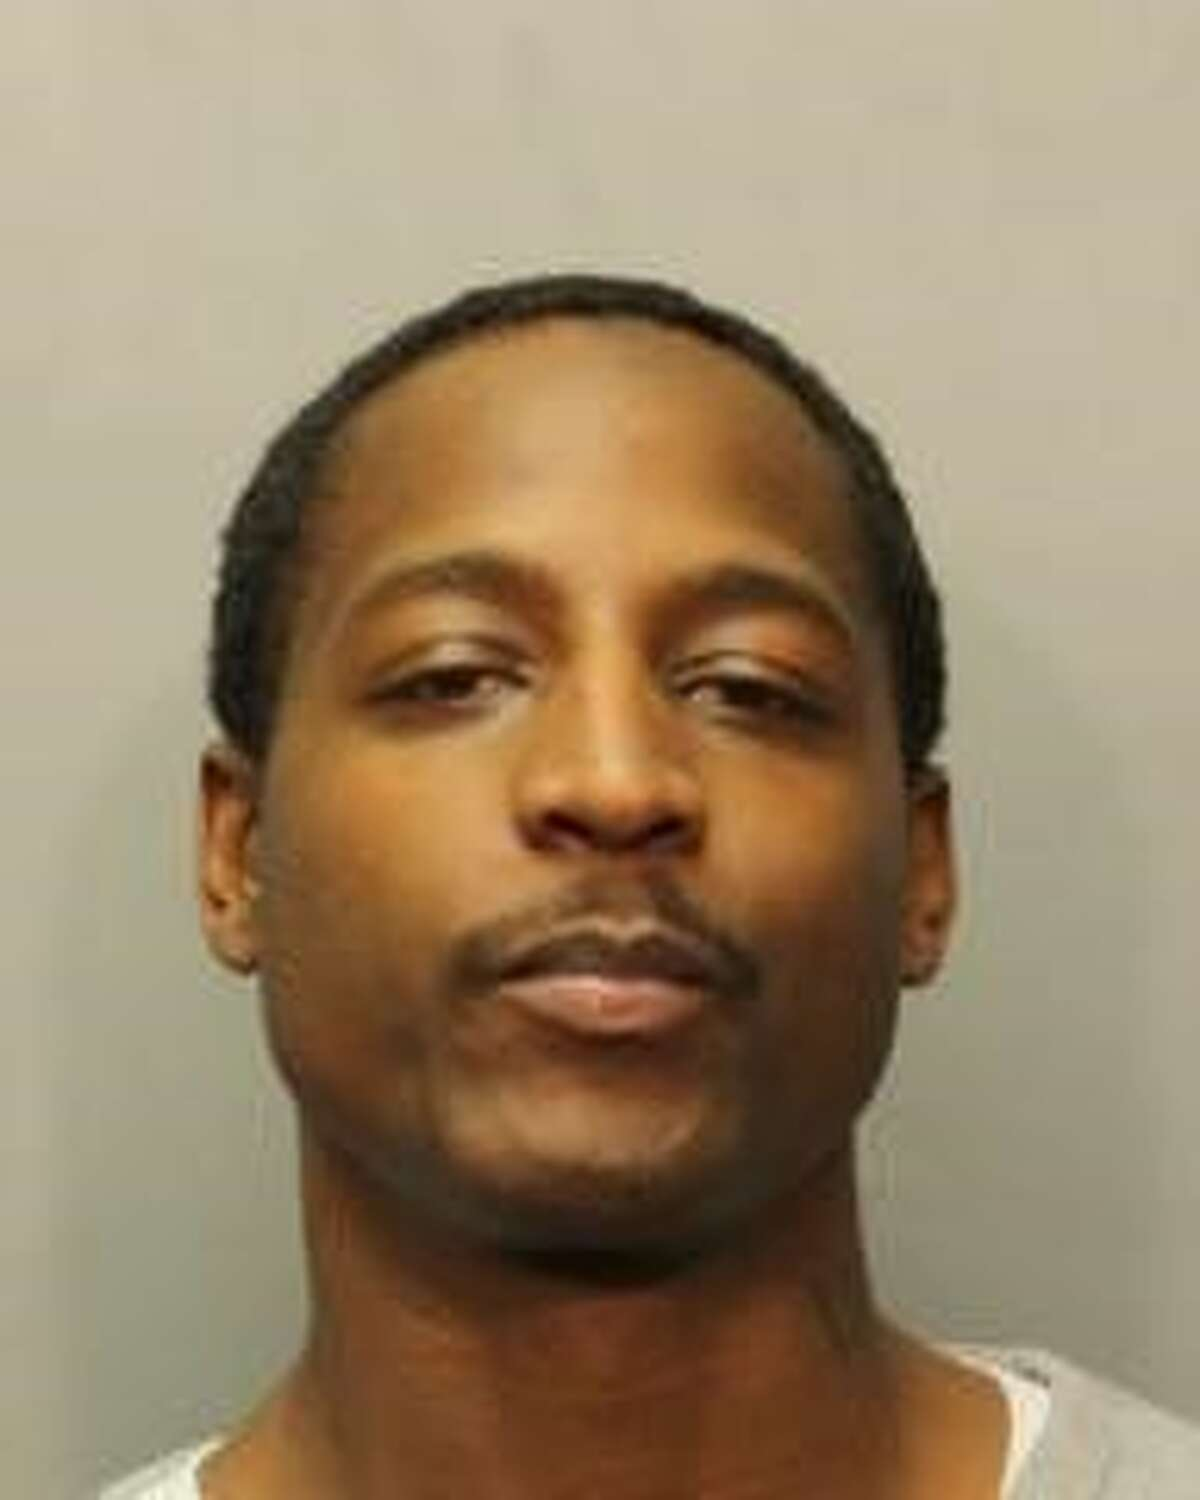 Deputies apprehended Antoine Adams at a Walmart. See suspects with Texas ties who haven't proved to be the brightest.